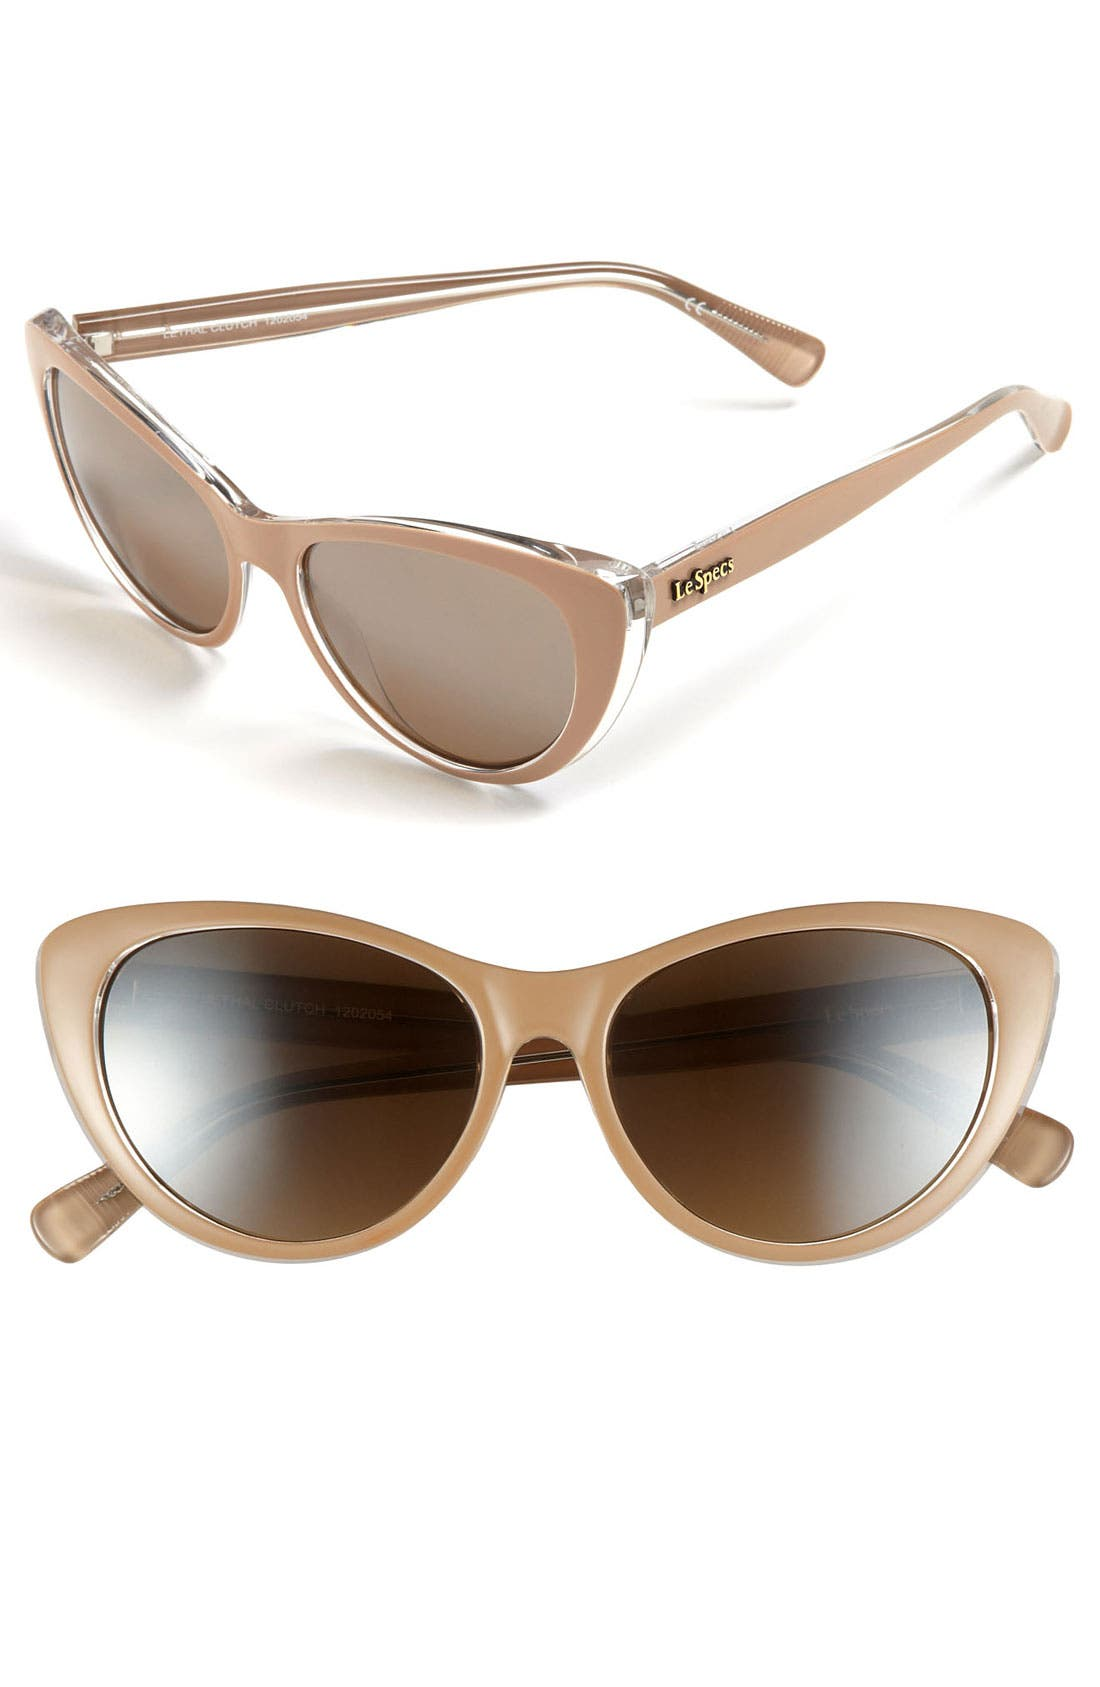 Alternate Image 1 Selected - Le Specs 'Lethal Clutch' Sunglasses